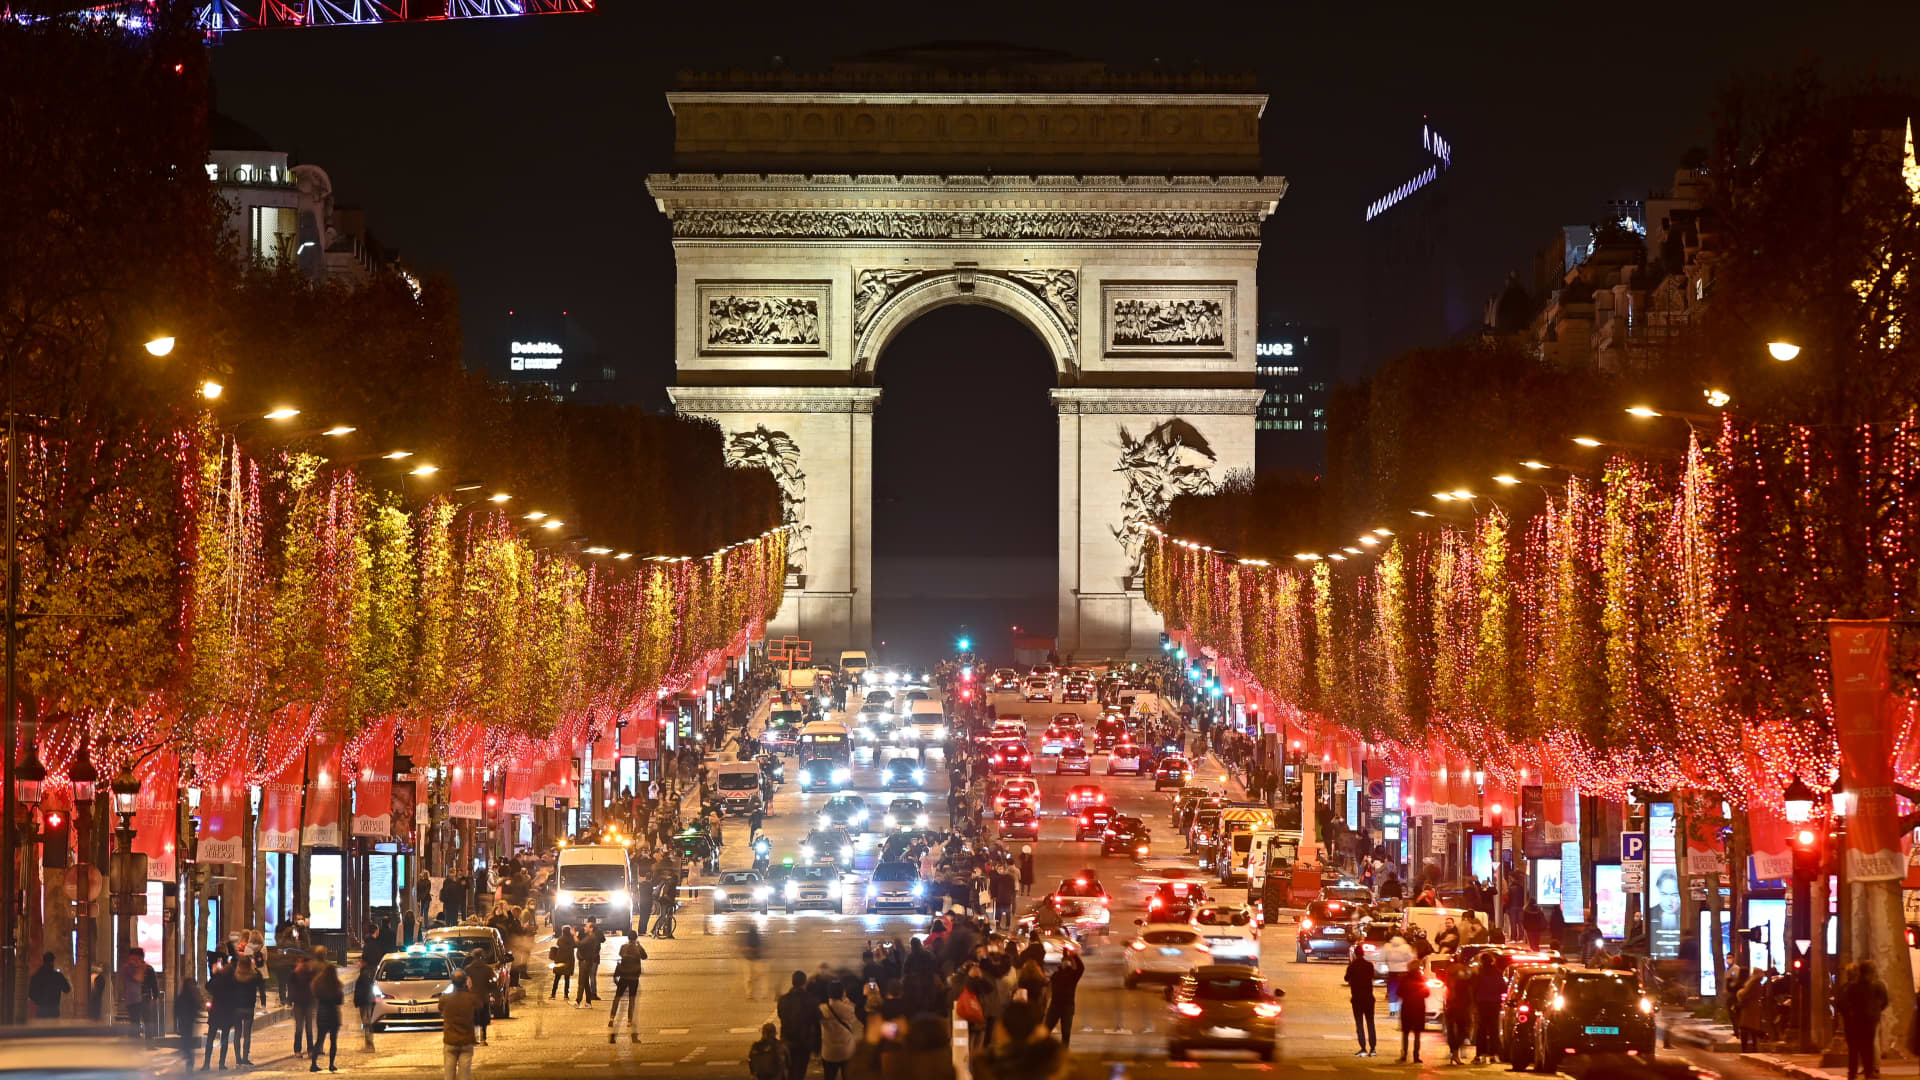 Red Christmas lights decorate the trees to illuminate the Champs-Elysees avenue with the Arc de Triomphe in the background for Christmas celebrations on November 22, 2020 in Paris, France.